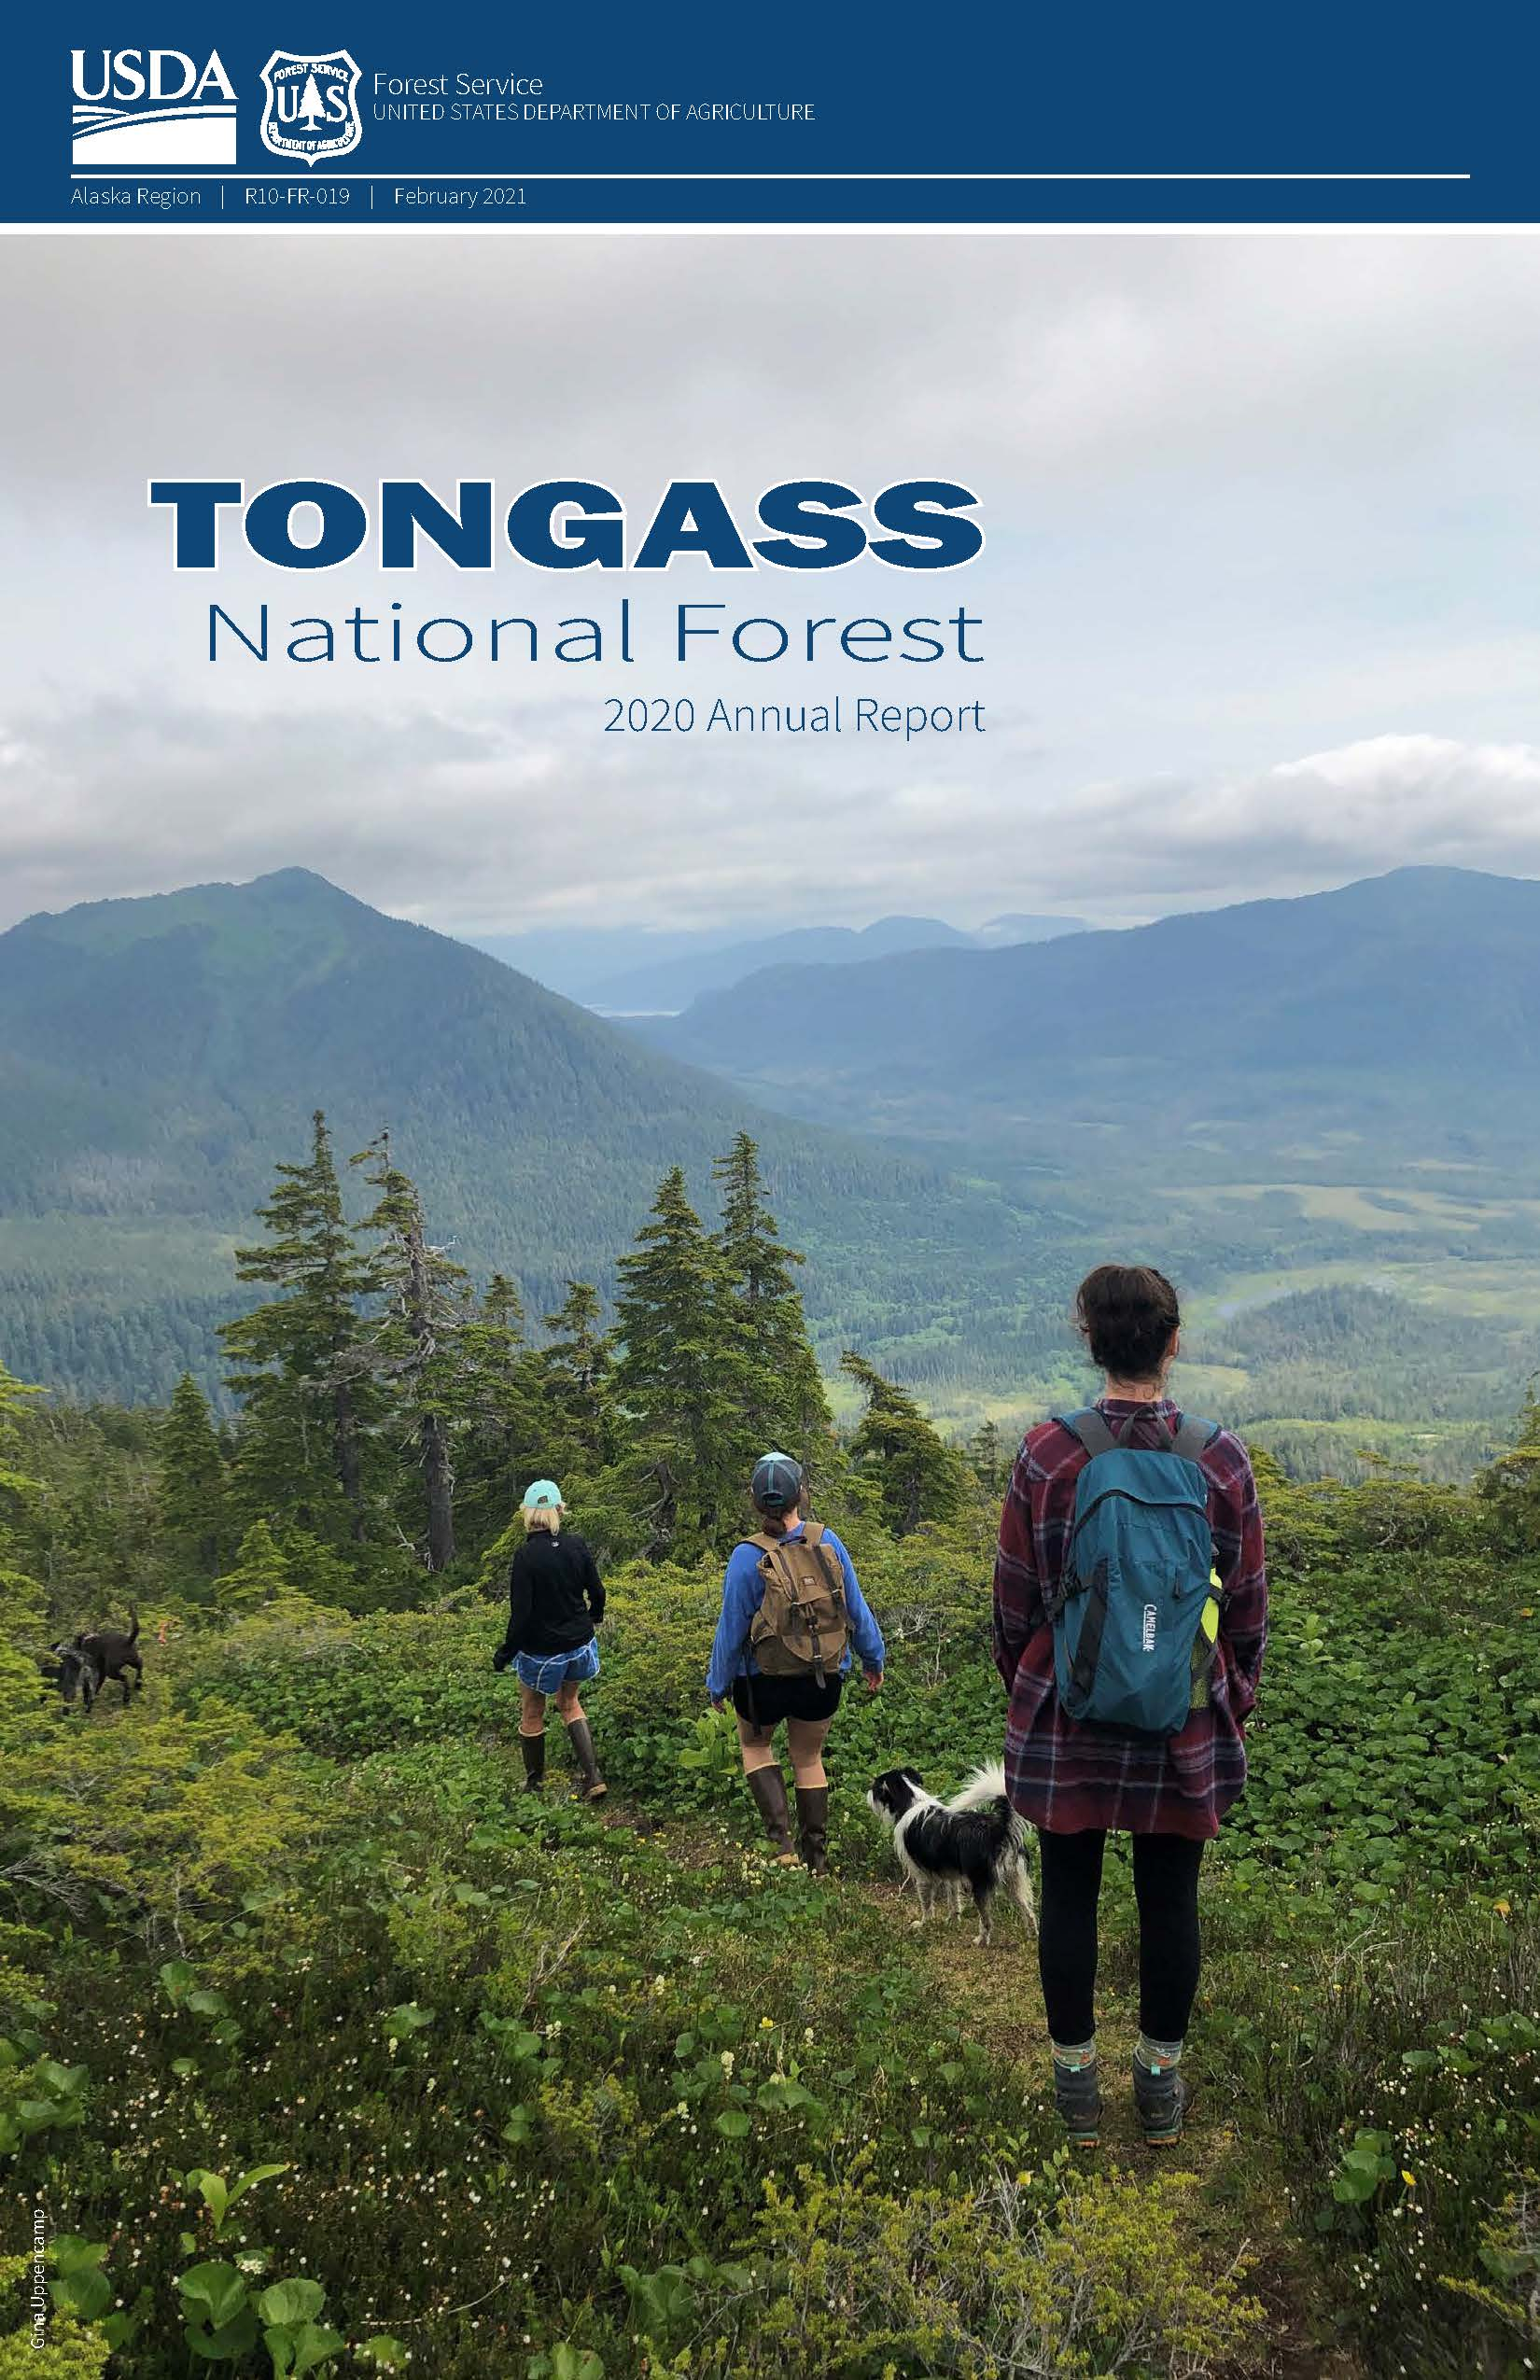 Front page of the State of the Tongass, 3 hikers and a dog walking through a green valley with trees